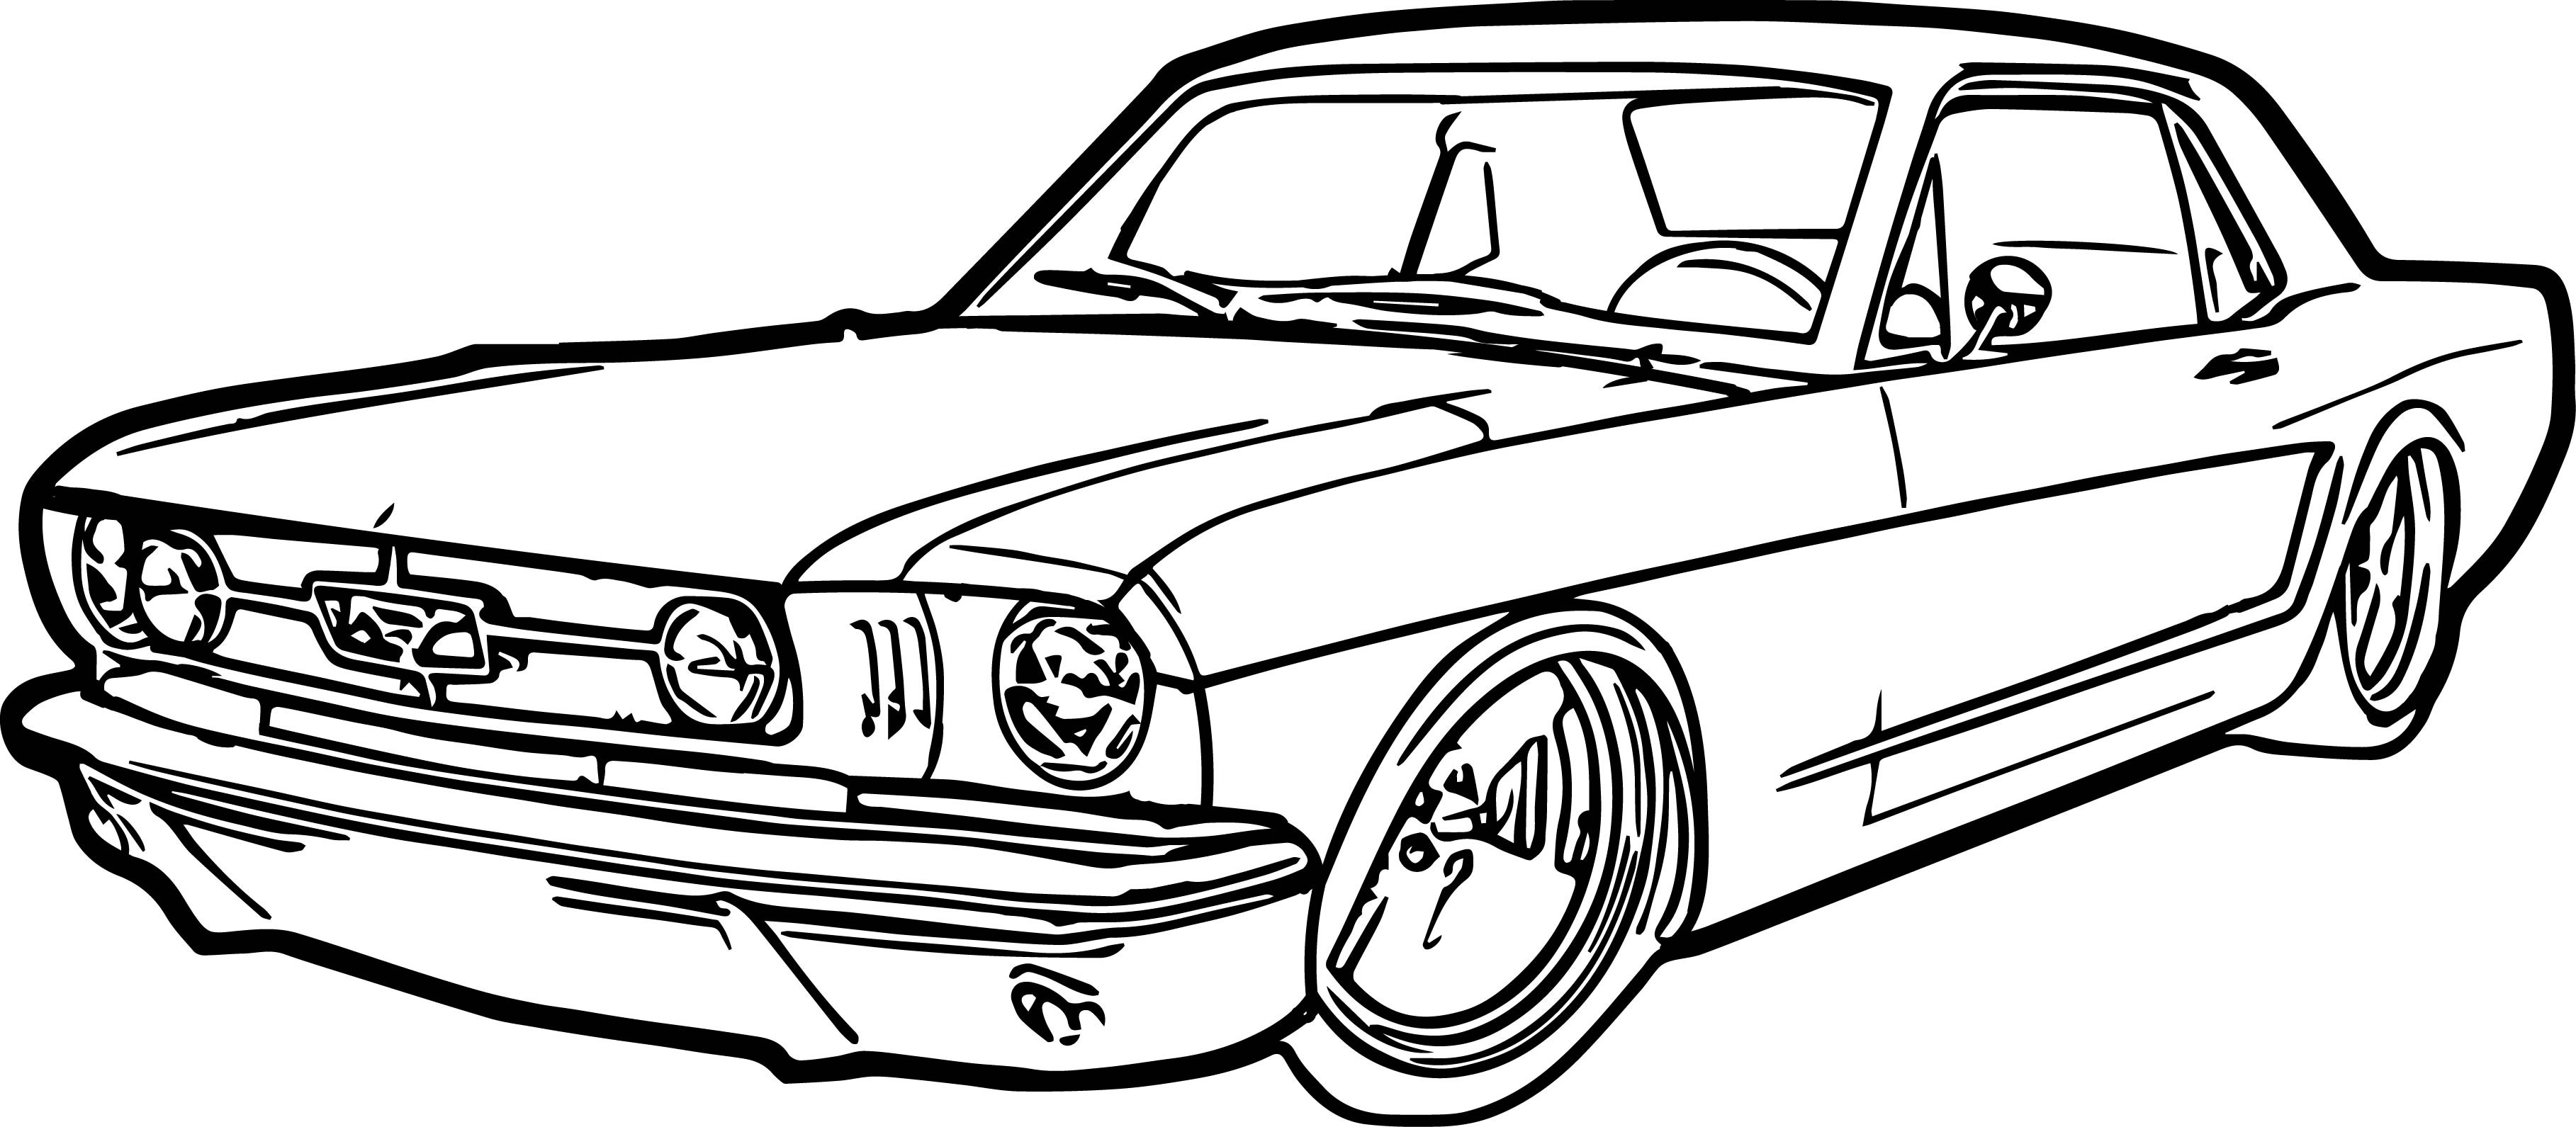 3635x1591 Automotive Drawing Race Car For Free Download